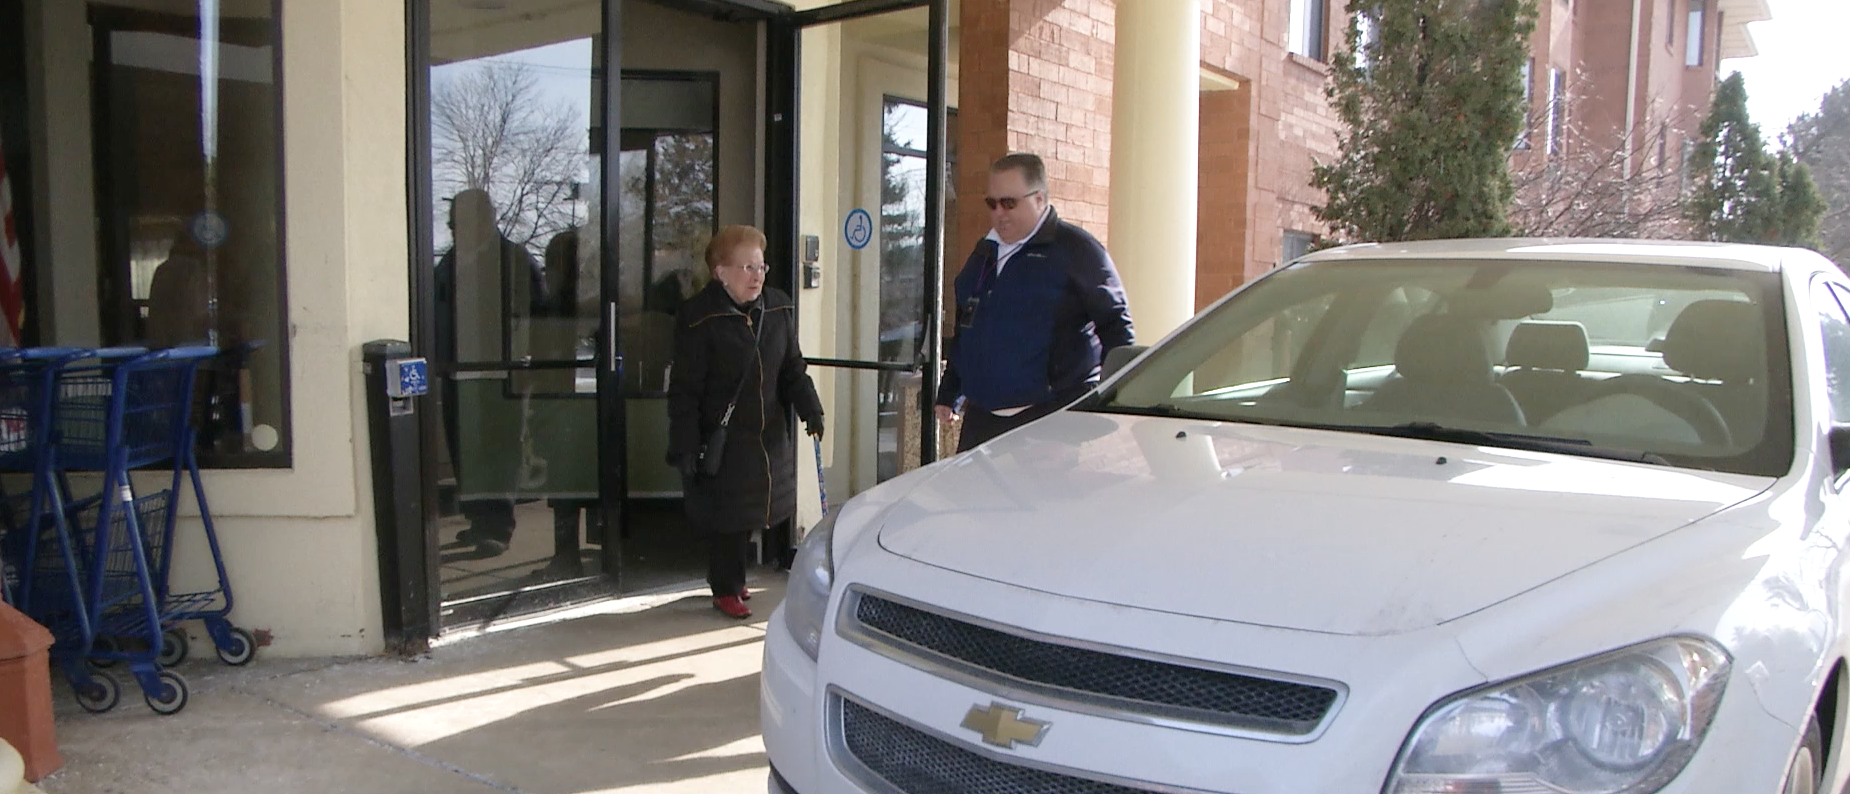 Driver on Call Program Gives Senior Residents Independence